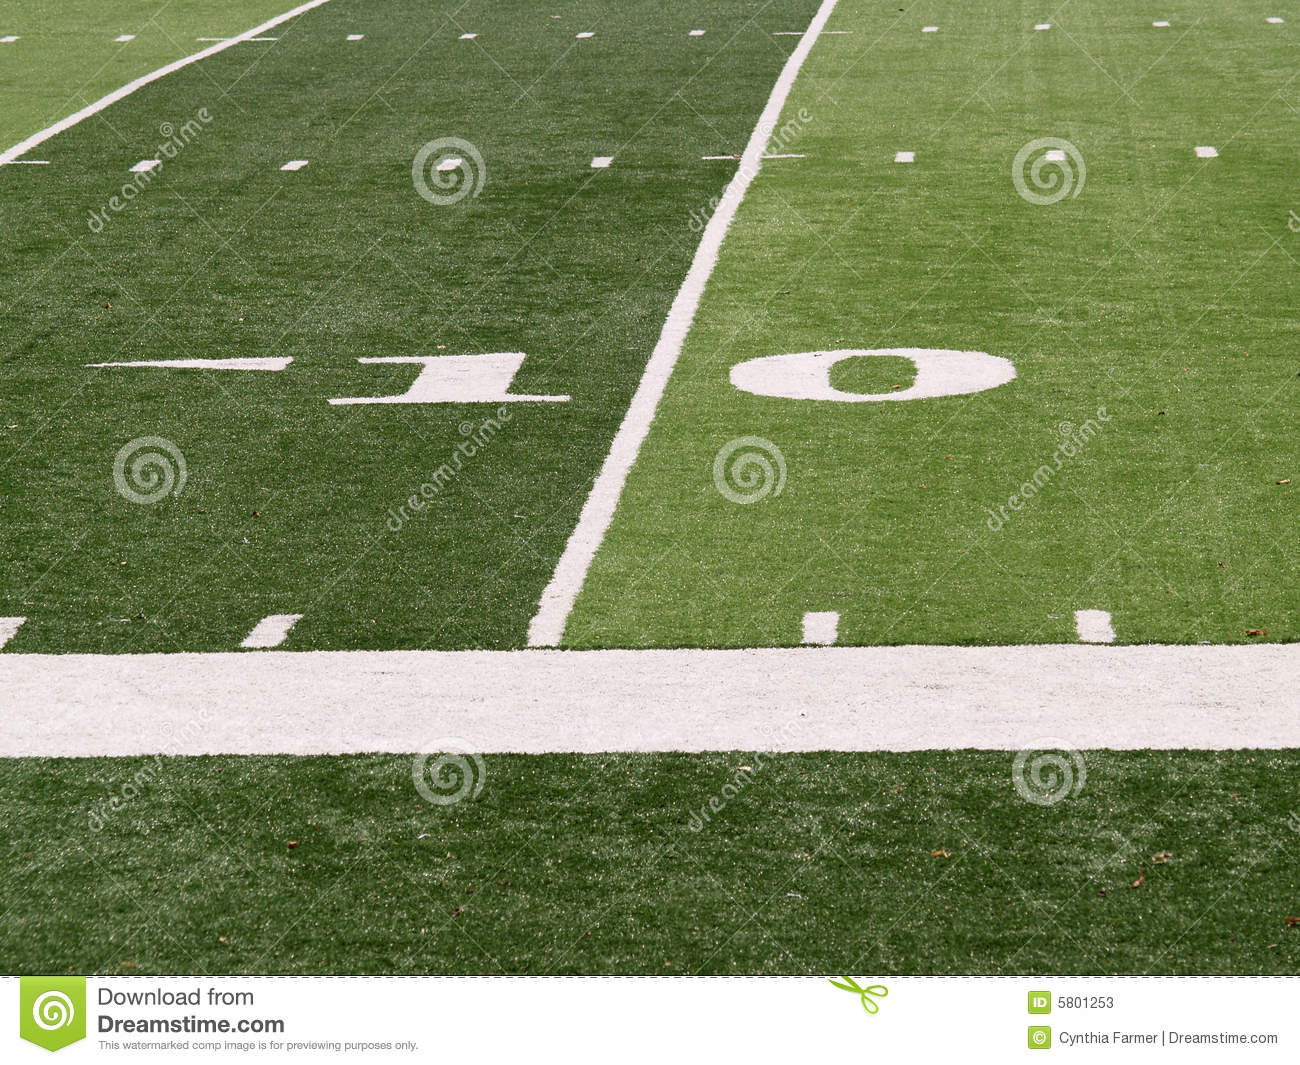 10 Yard Line On Football Field Stock Photos Image 5801253